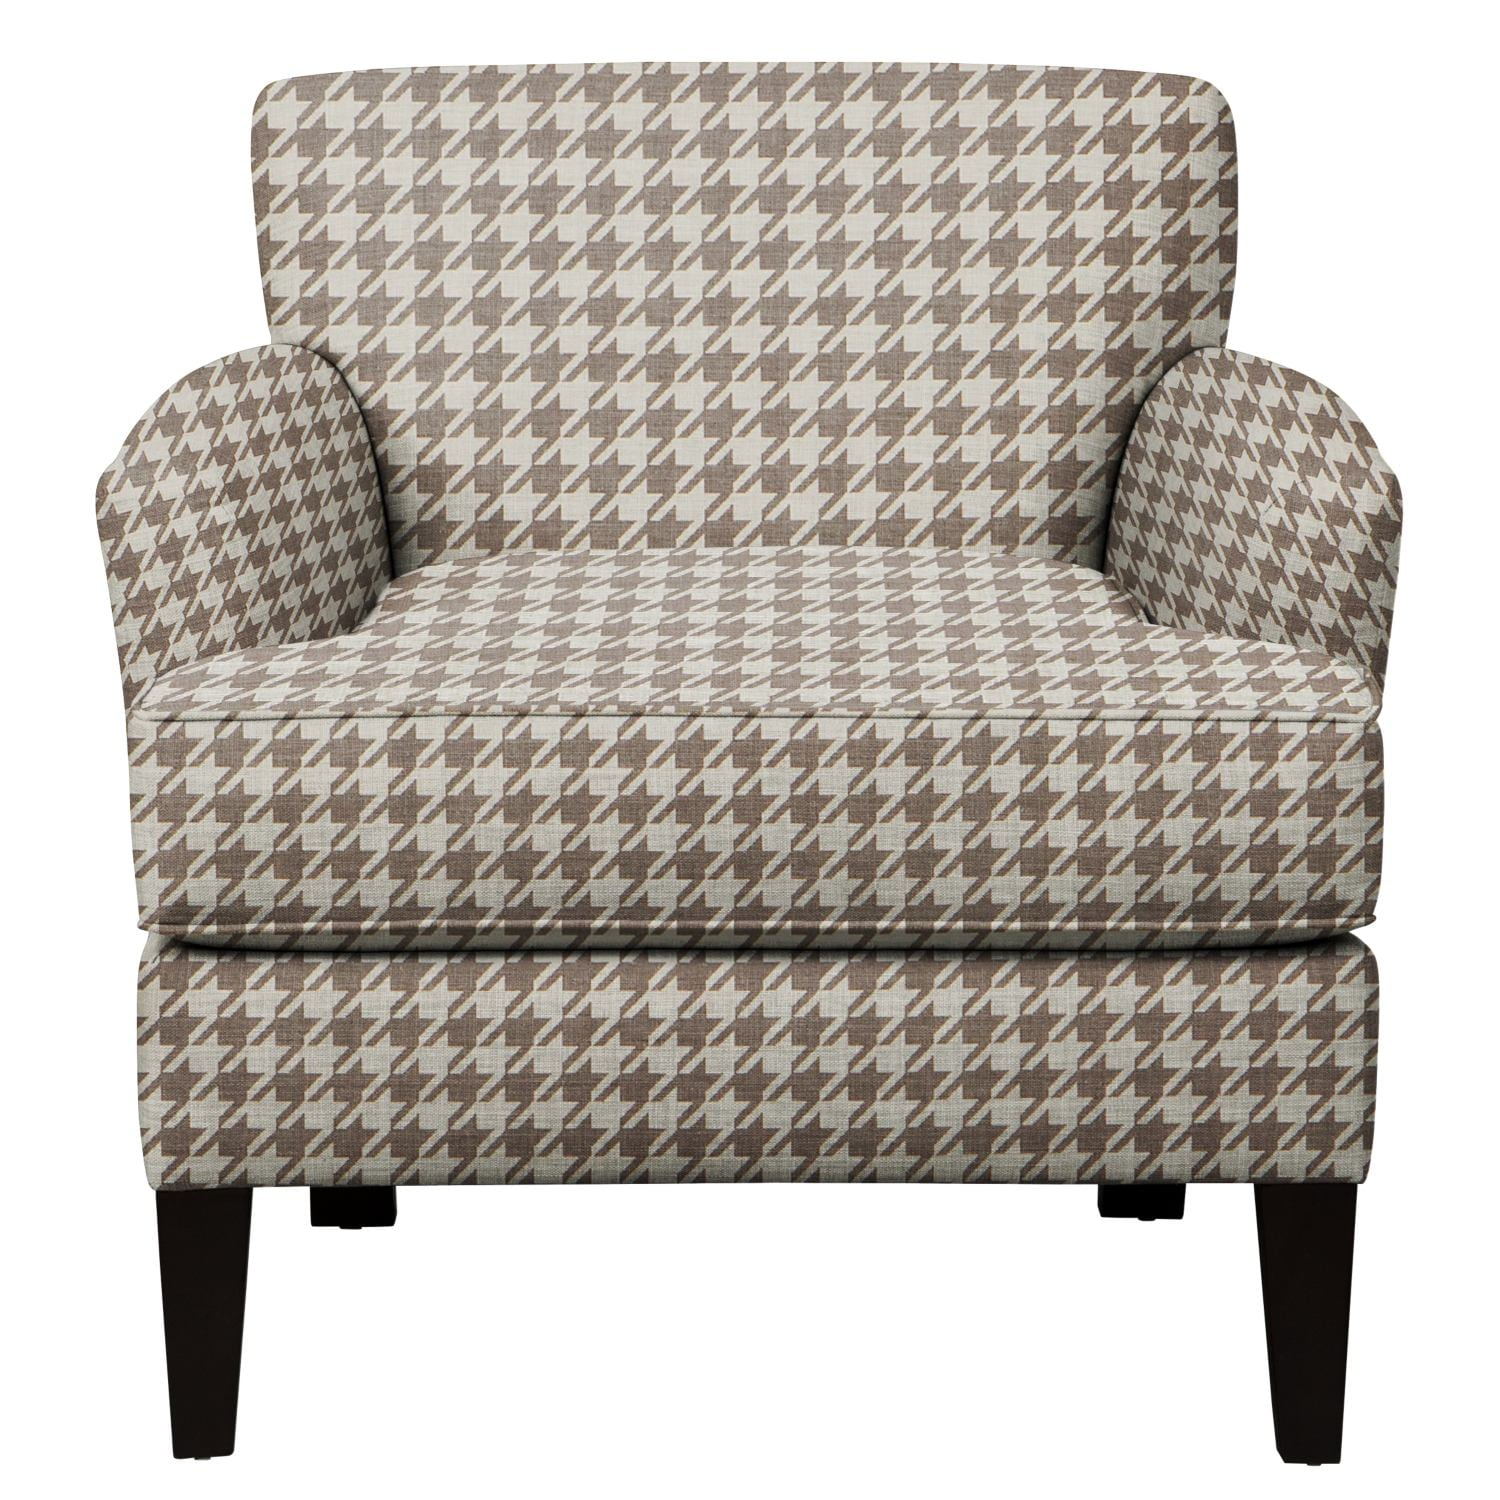 Living Room Furniture - Marcus Chair w/ Watson Putty Fabric